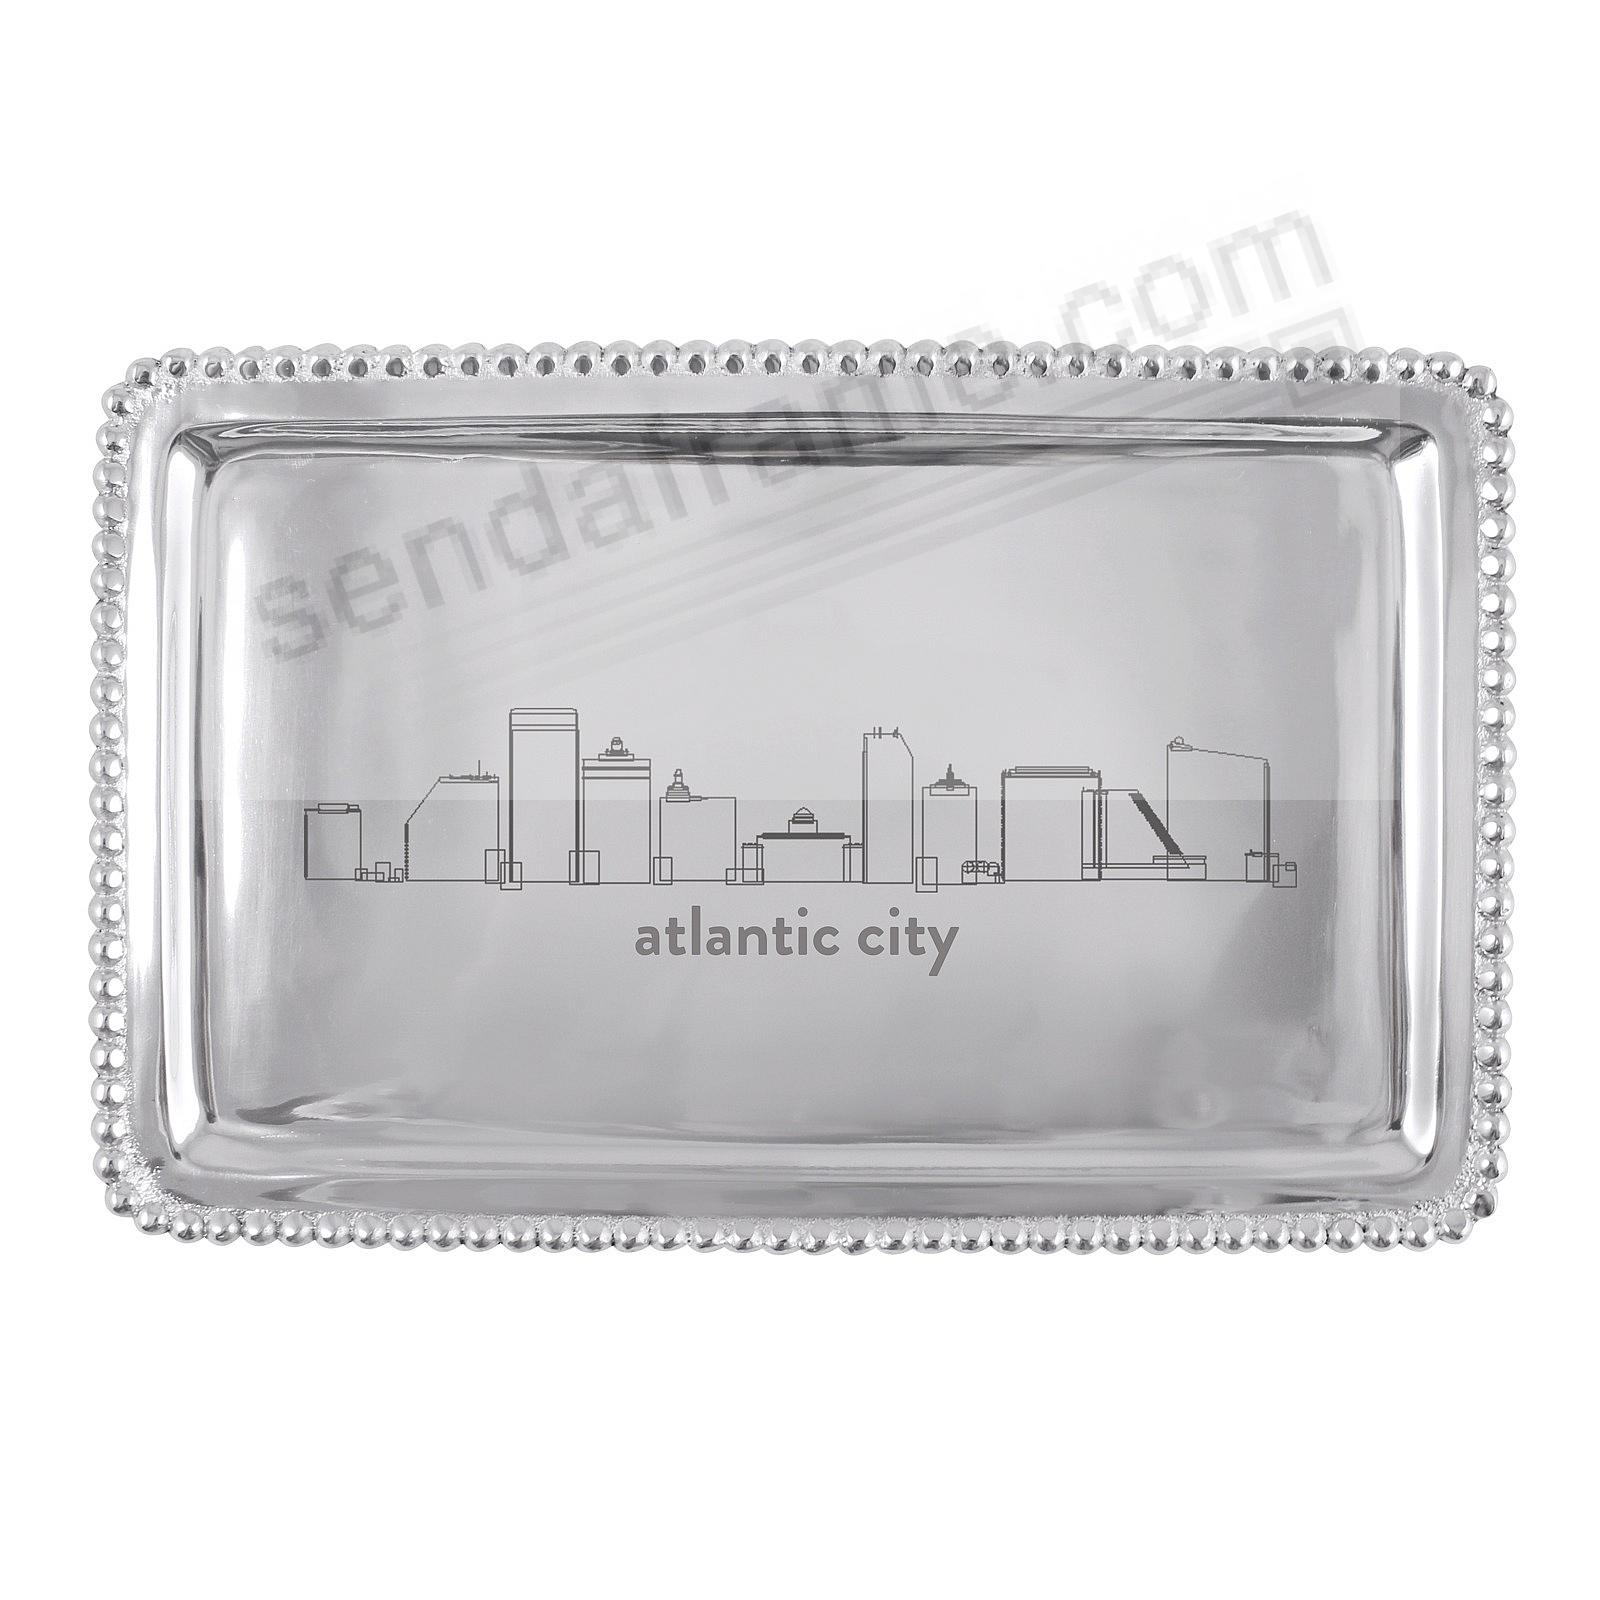 The ATLANTIC CITY NJ CITYSCAPE BEADED BUFFET TRAY crafted by Mariposa®